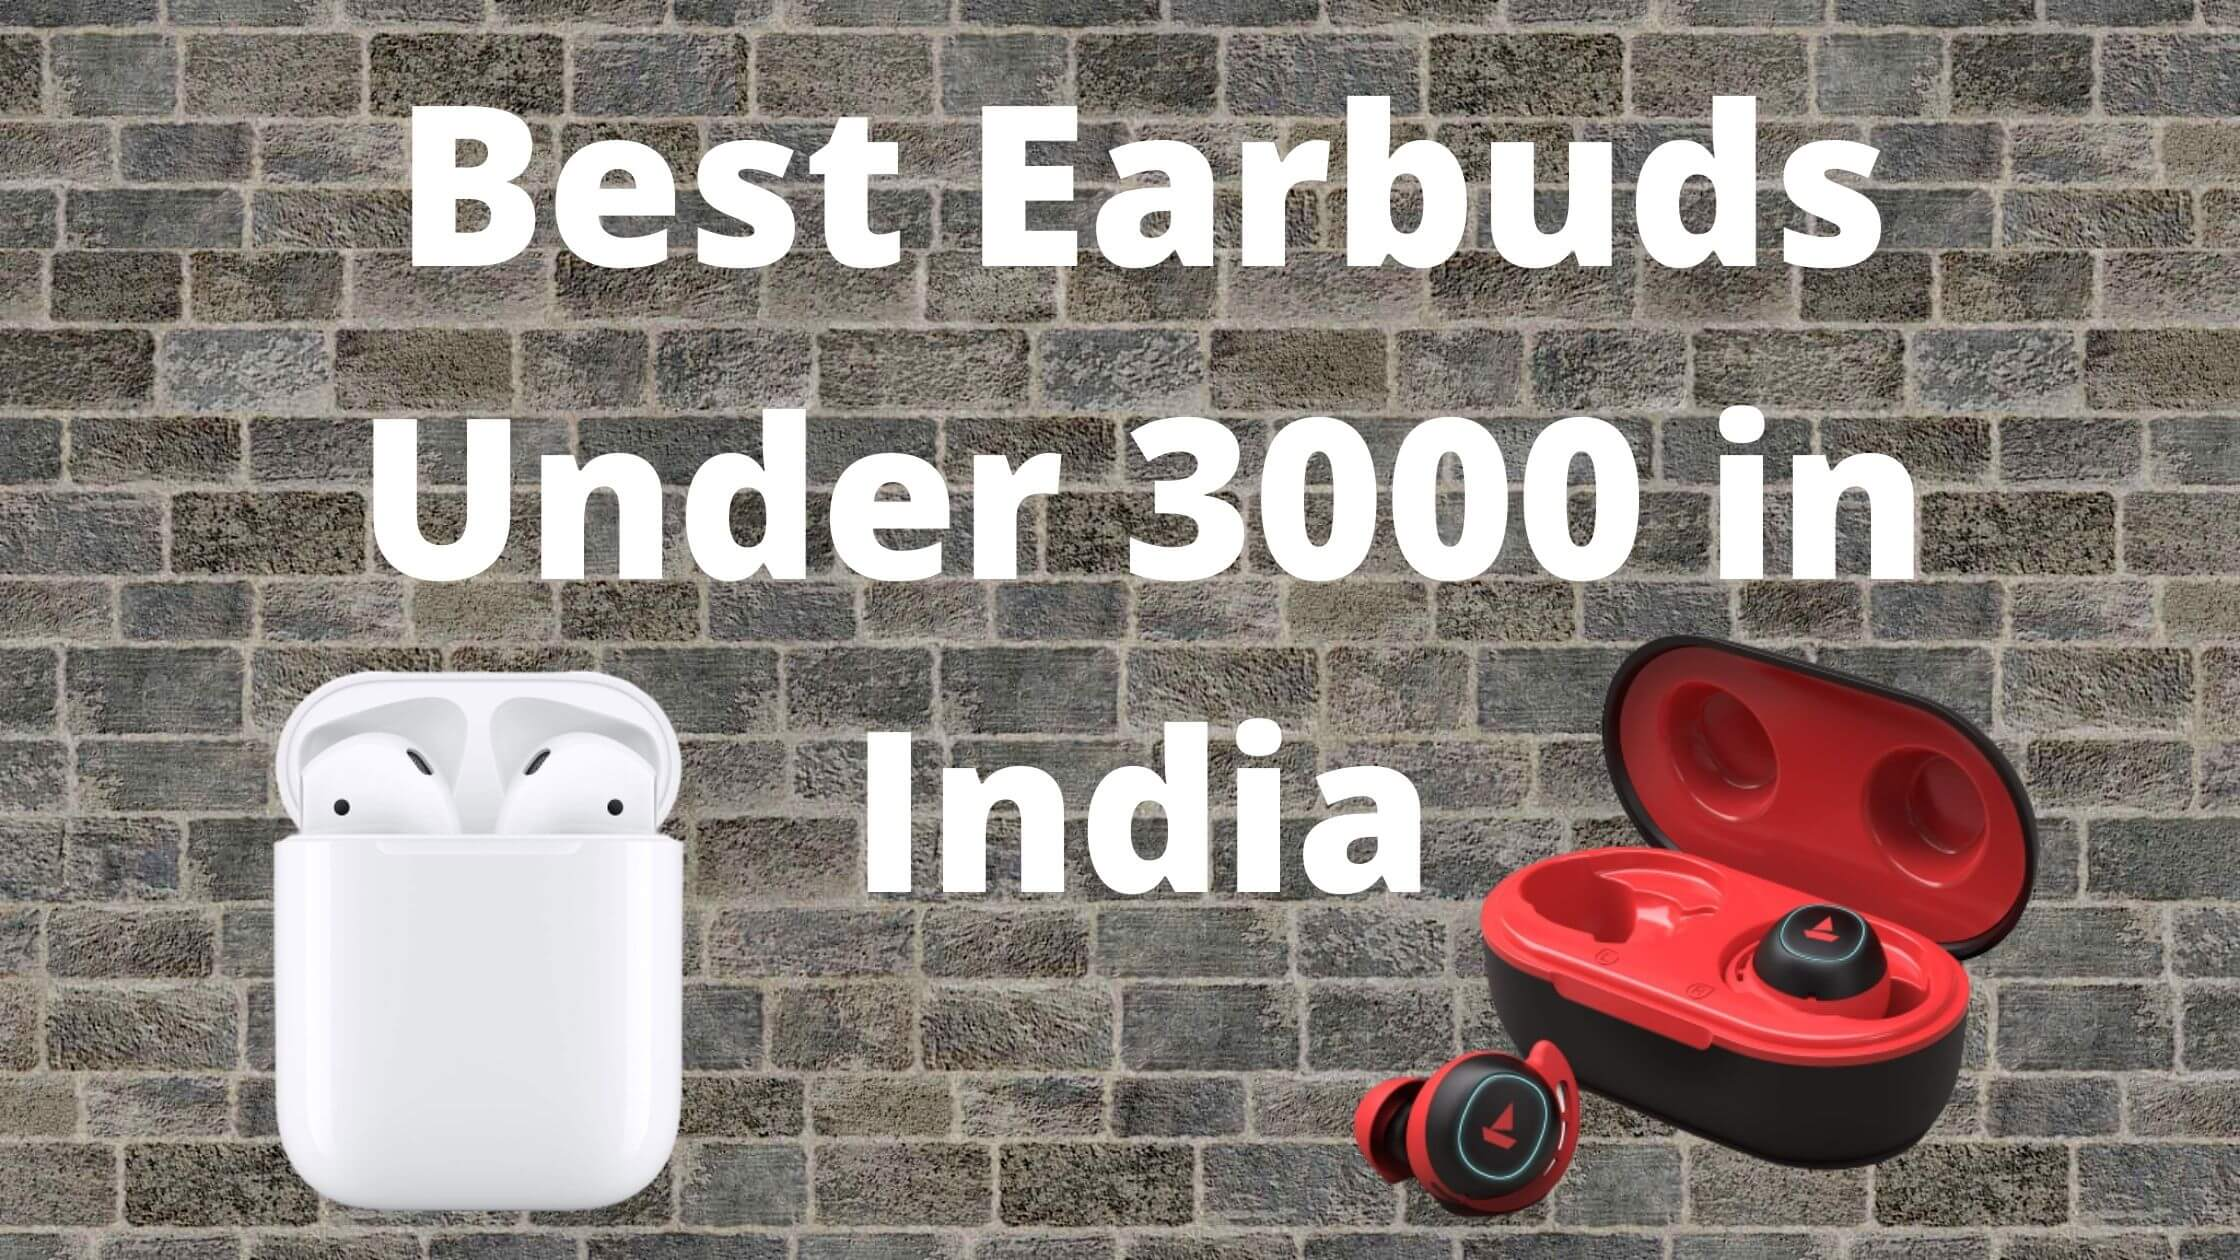 Best Earbuds Under 3000 in India